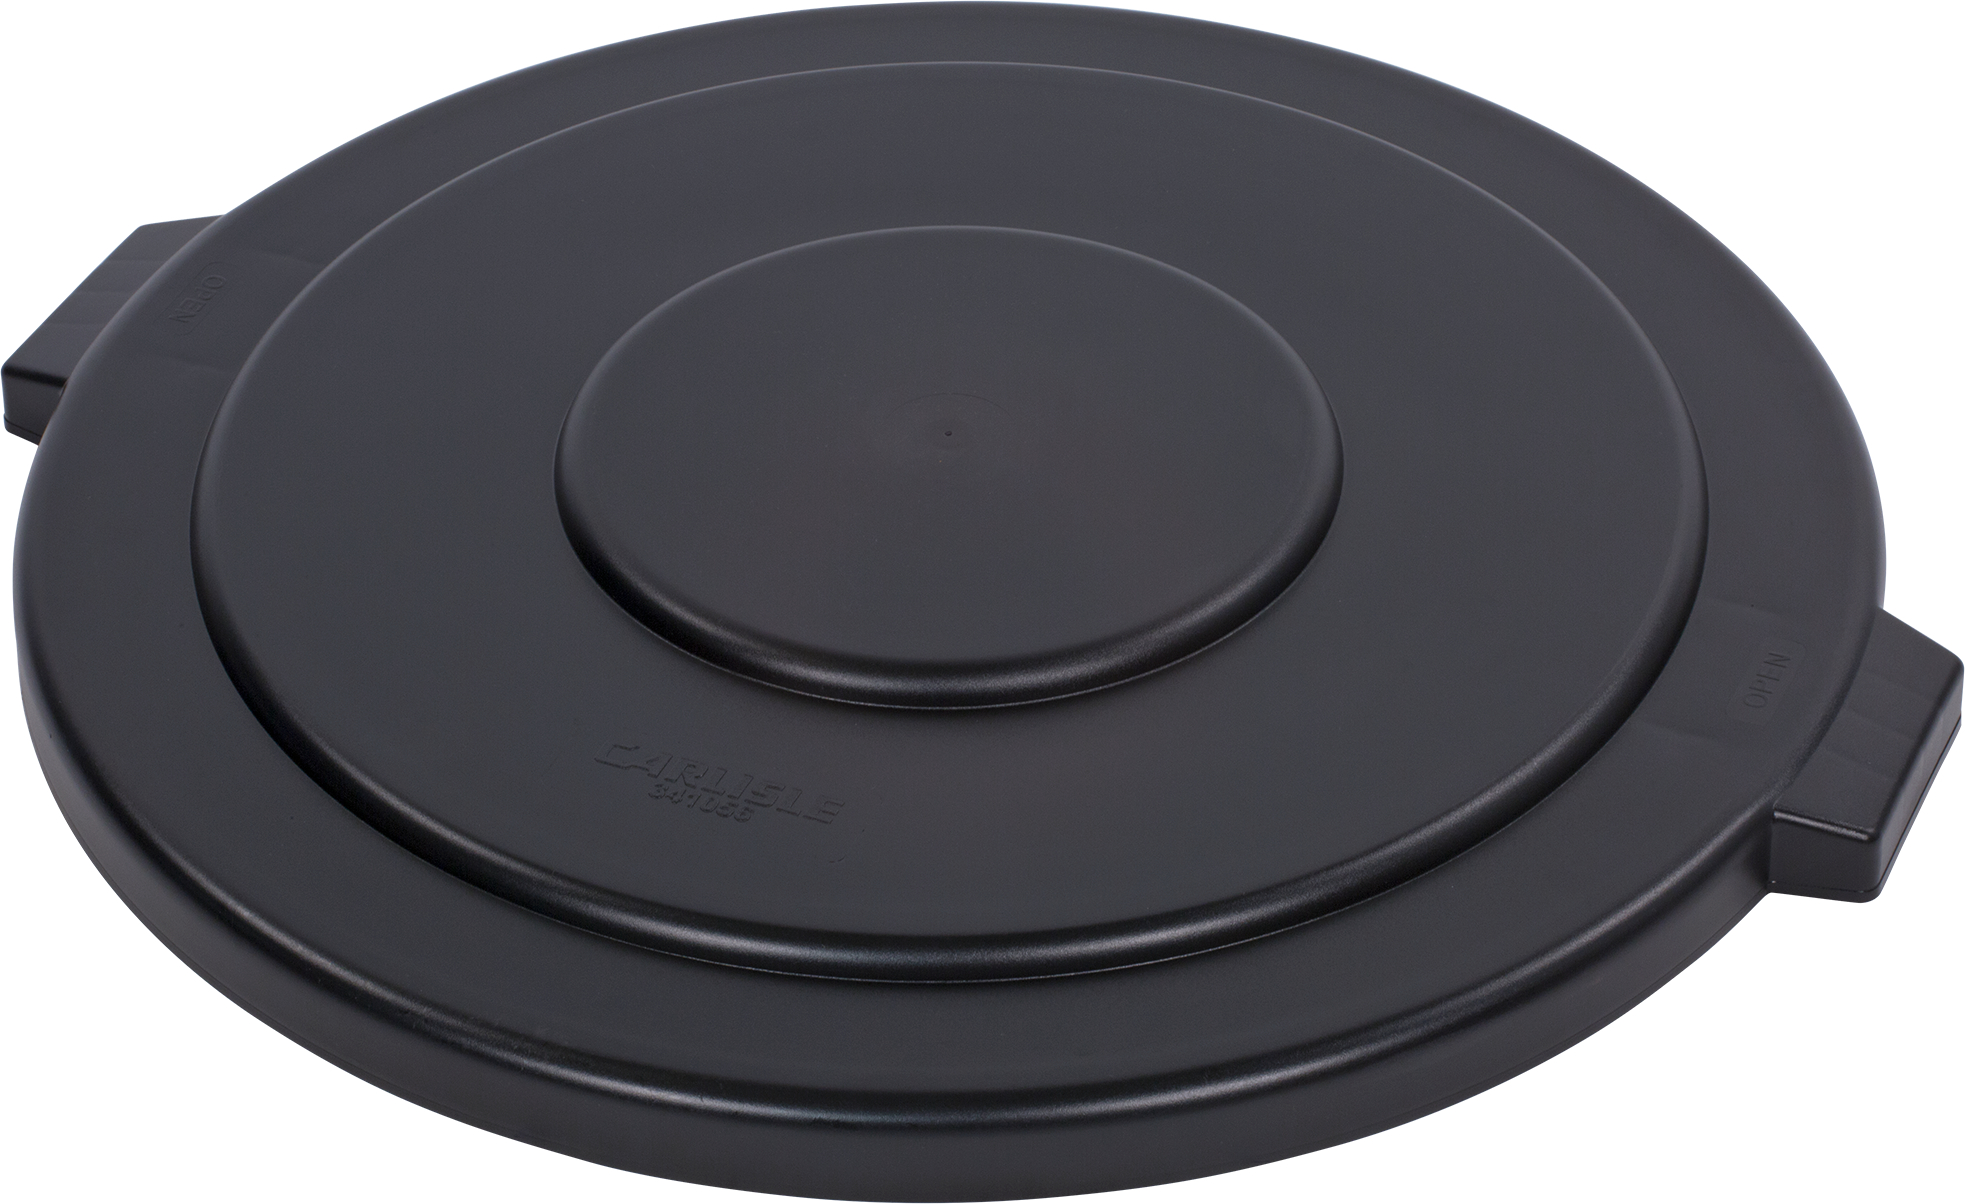 Bronco Round Waste Bin Trash Container Lid 55 Gallon - Black